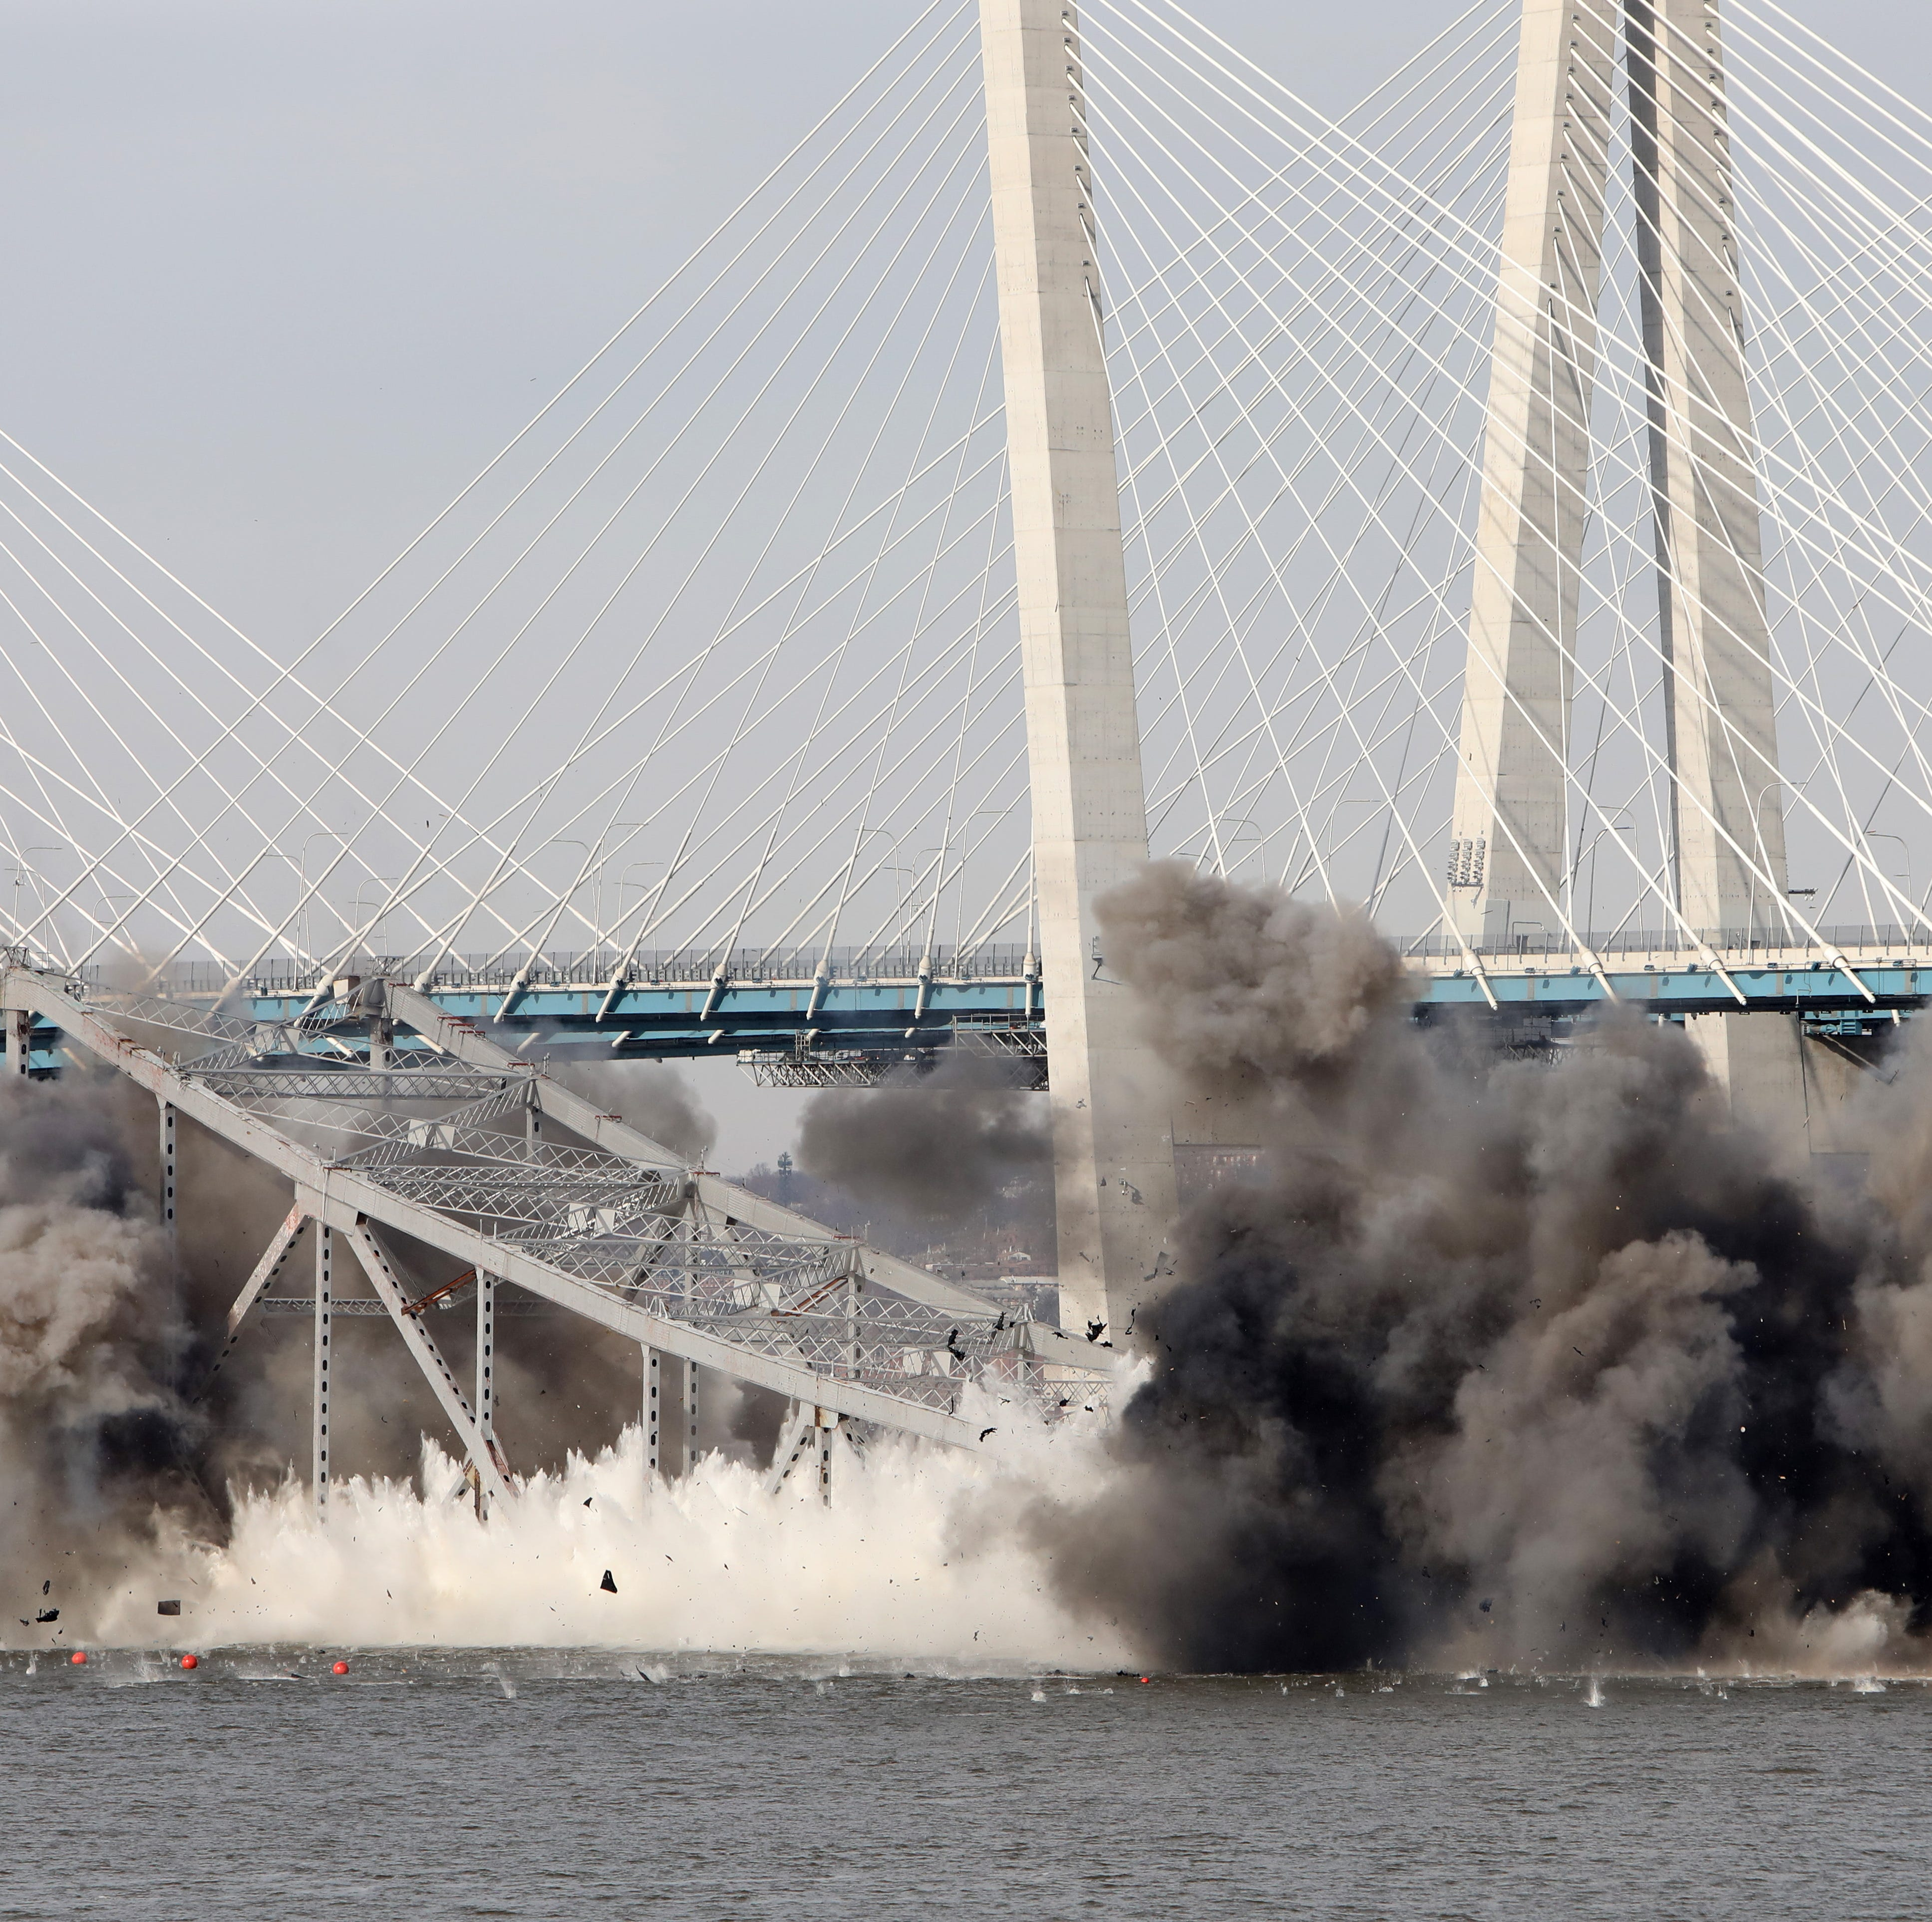 Watching Tappan Zee's historic splash into the Hudson: #lohudreacts